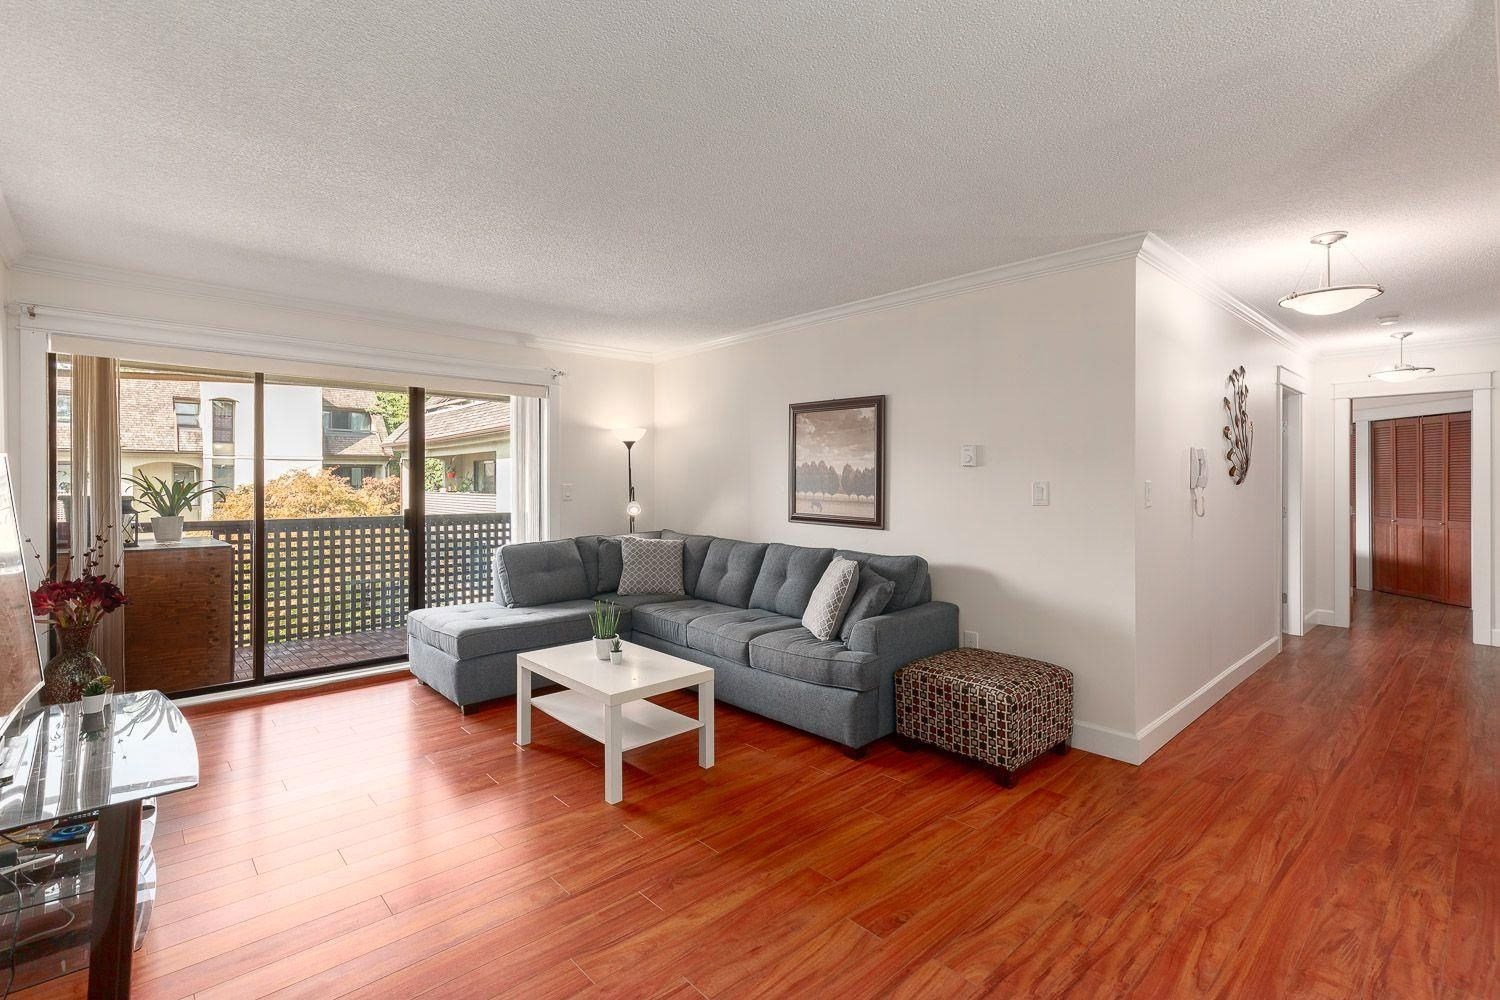 Main Photo: 317 1210 PACIFIC Street in Coquitlam: North Coquitlam Condo for sale : MLS®# R2618063